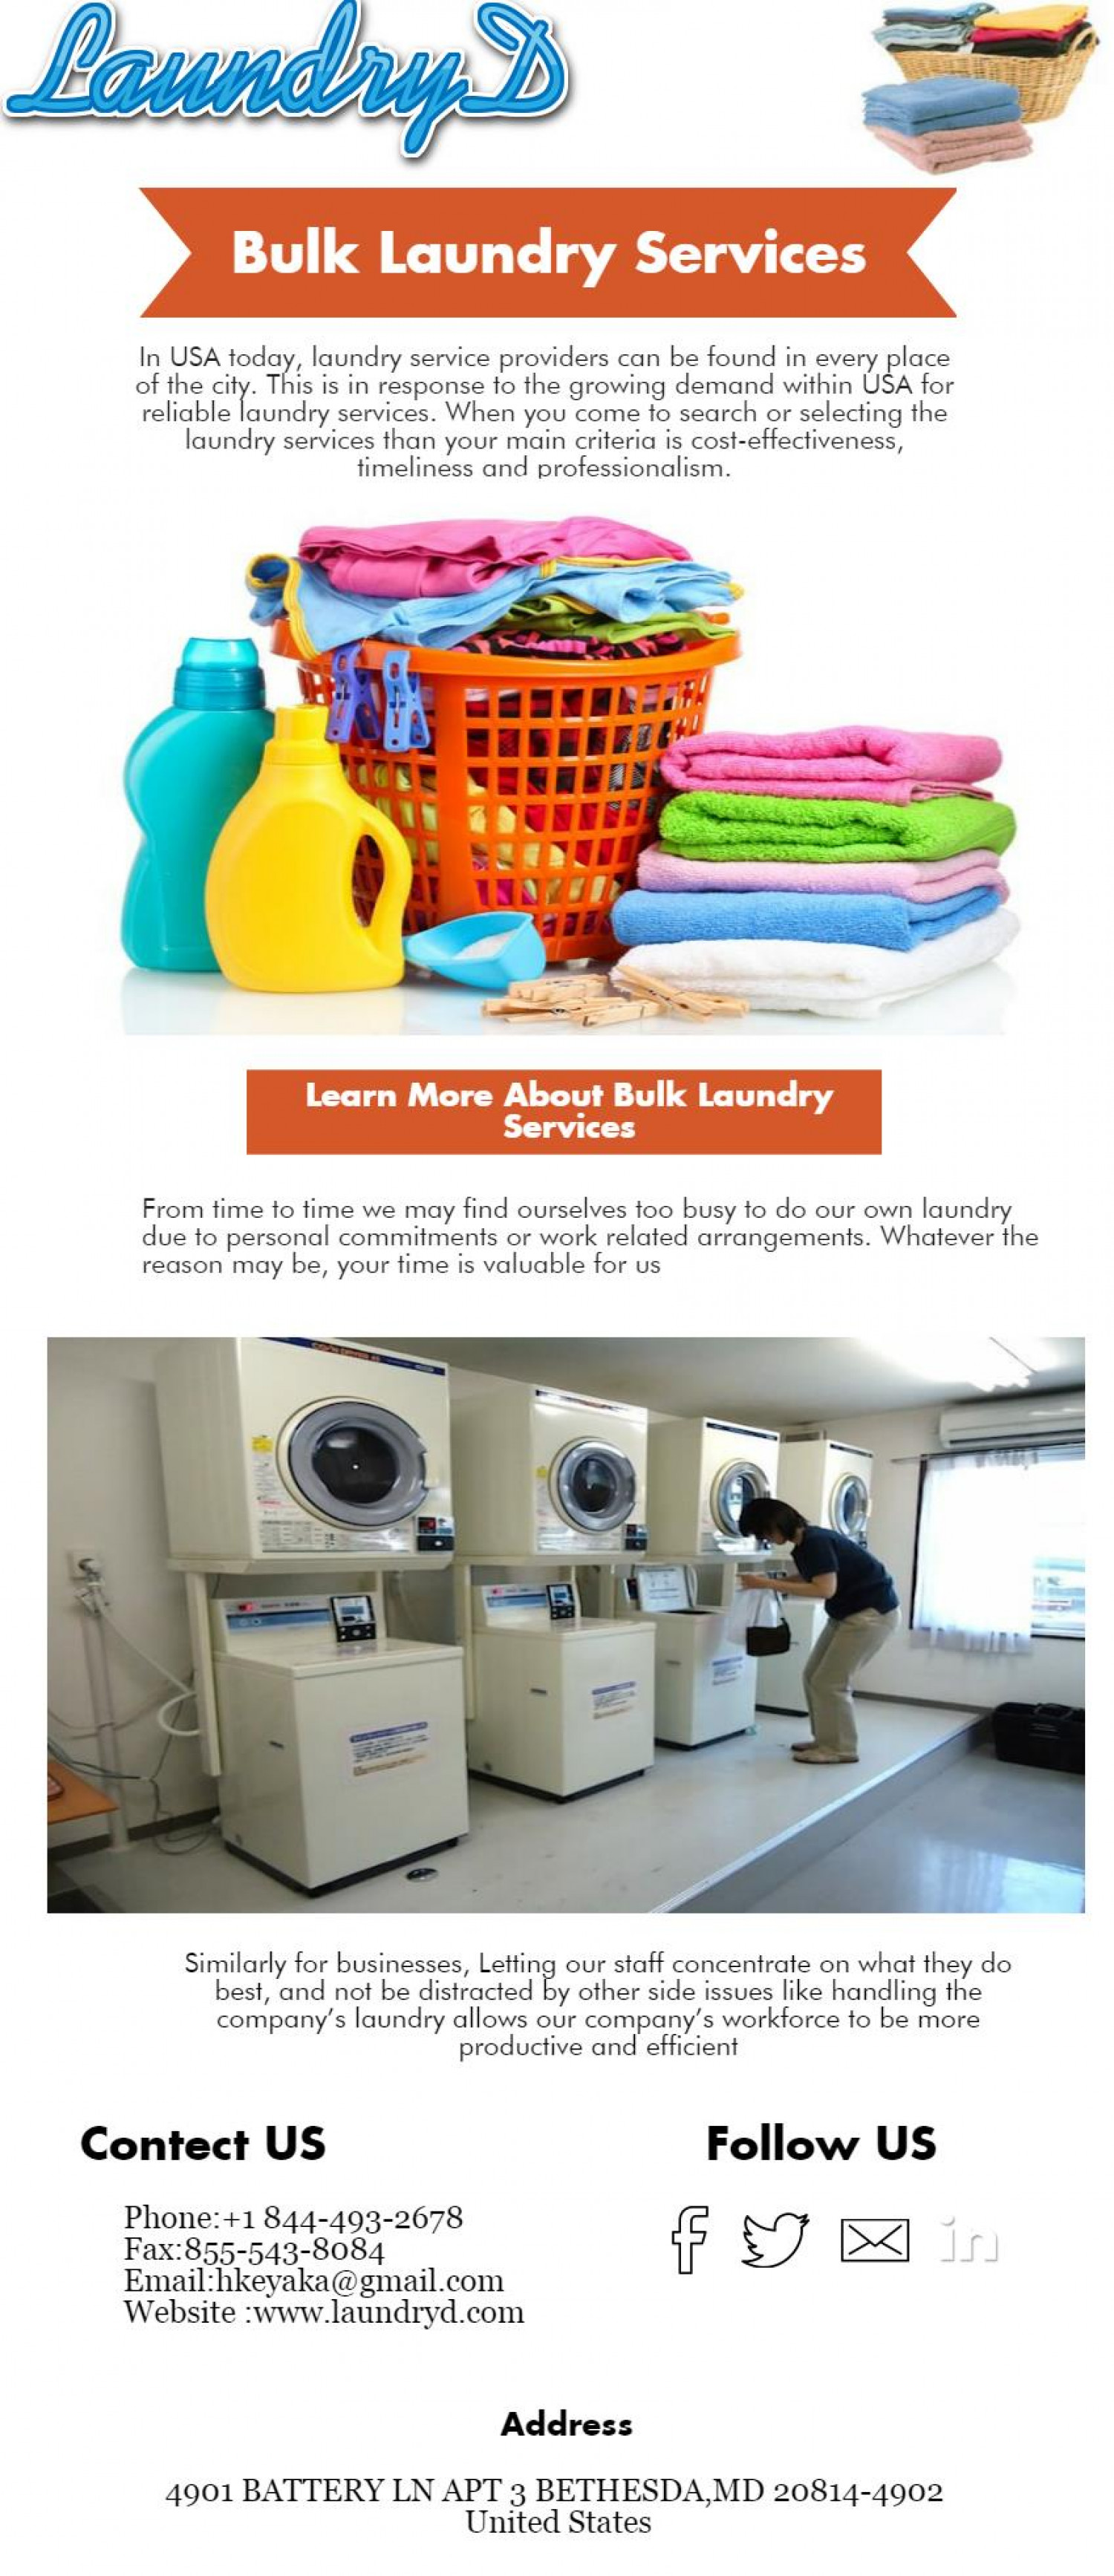 Bulk Laundry Services in USA Infographic